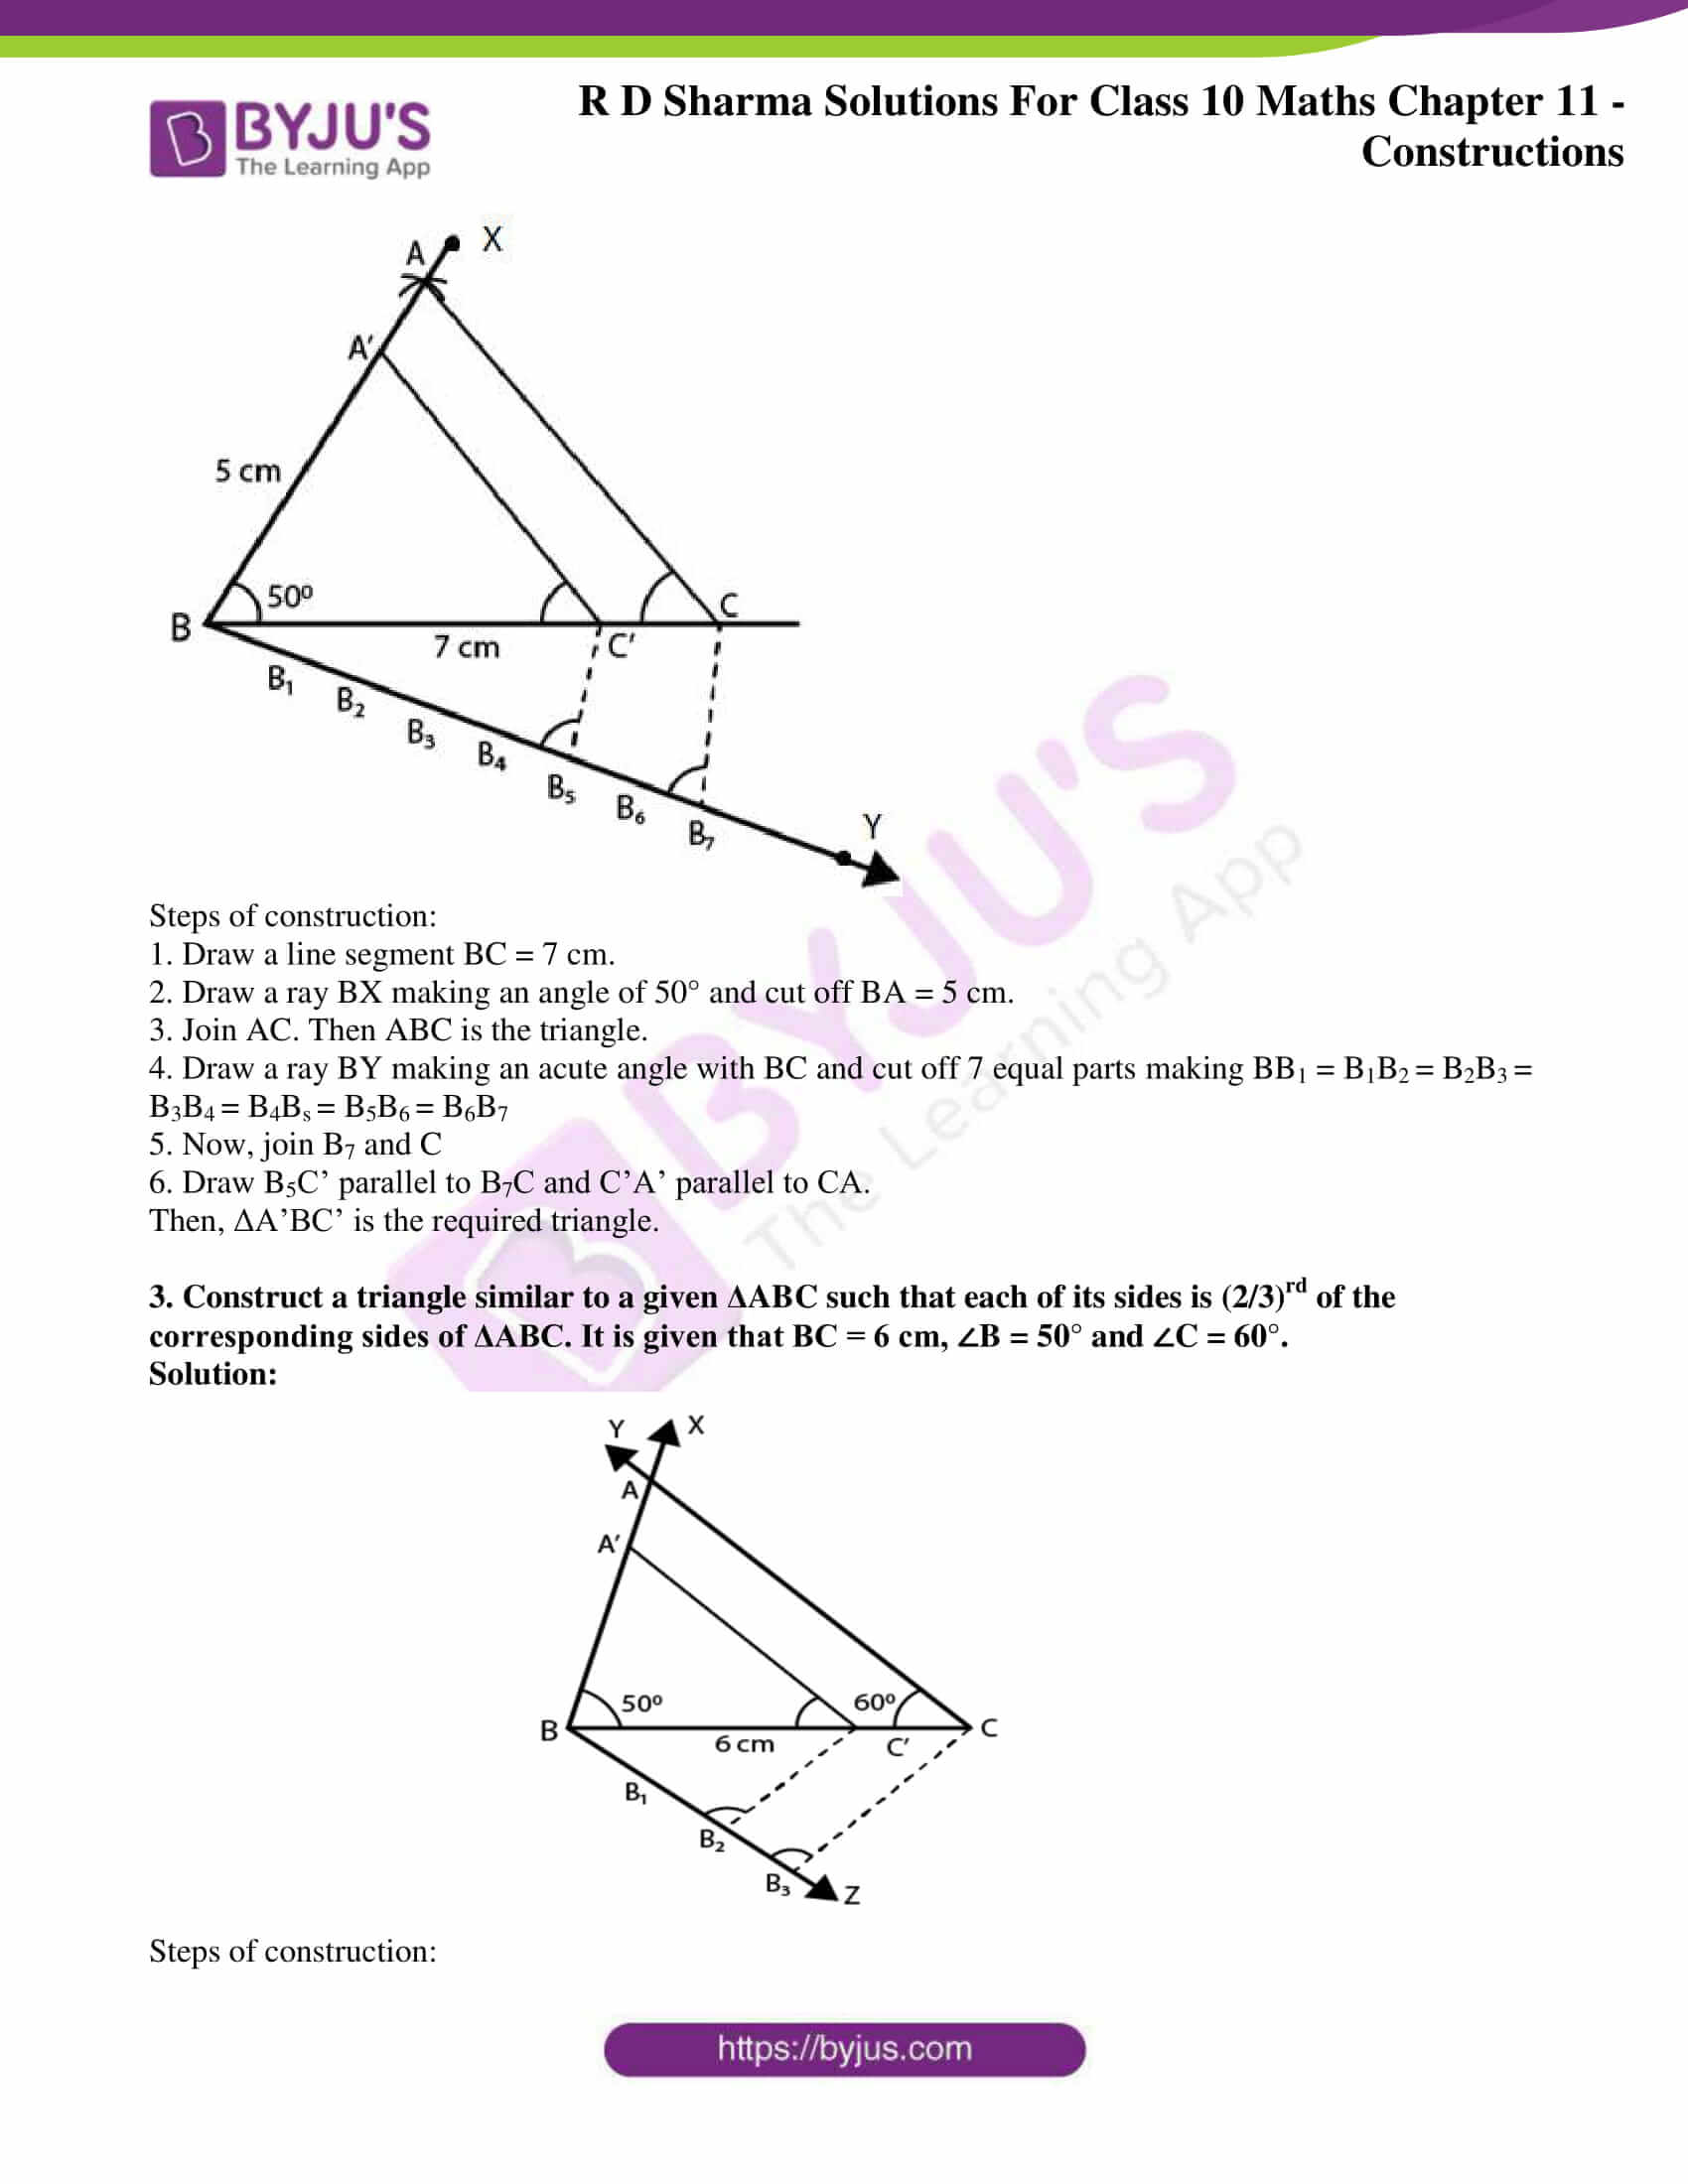 rd sharma class 10 chapter 11 constructions solutions exercise 2 2